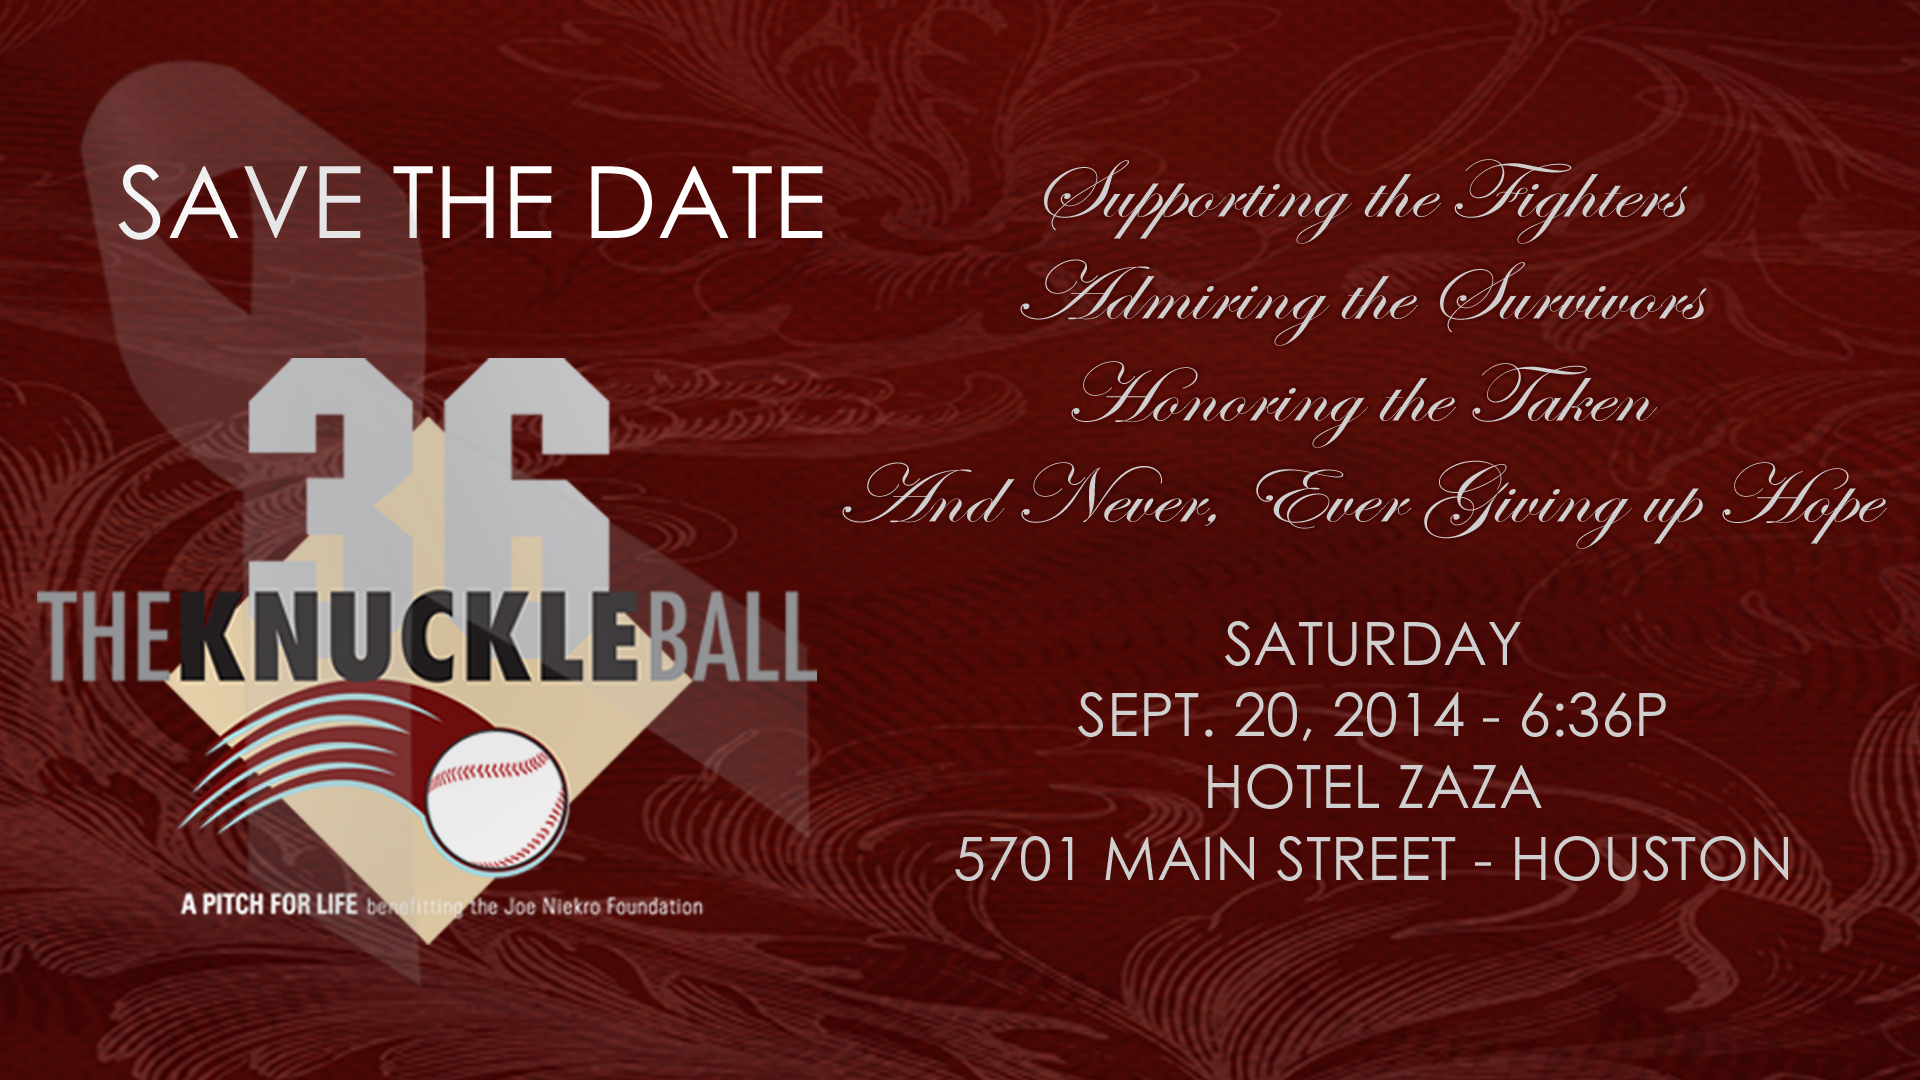 https://www.joeniekrofoundation.com/past-events/pastevents2015/phoenixknuckleball2015/attachment/web-banner-3/